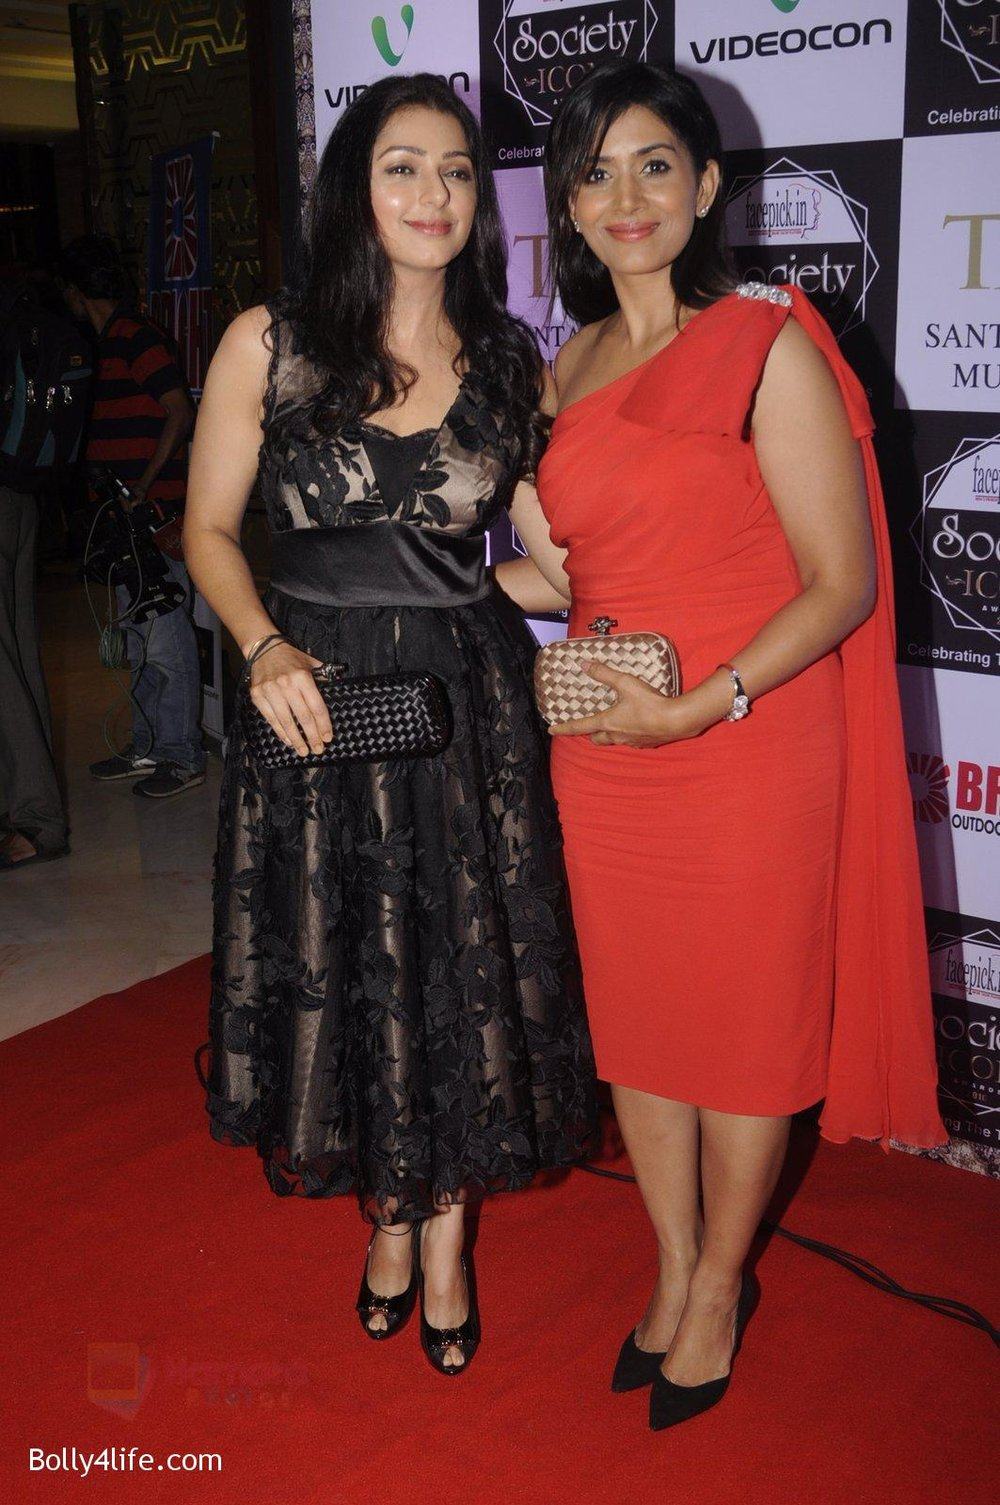 Sonali-Kulkarni-Bhumika-Chawla-at-Society-Icon-Awards-on-2nd-Oct-2016-40.jpg